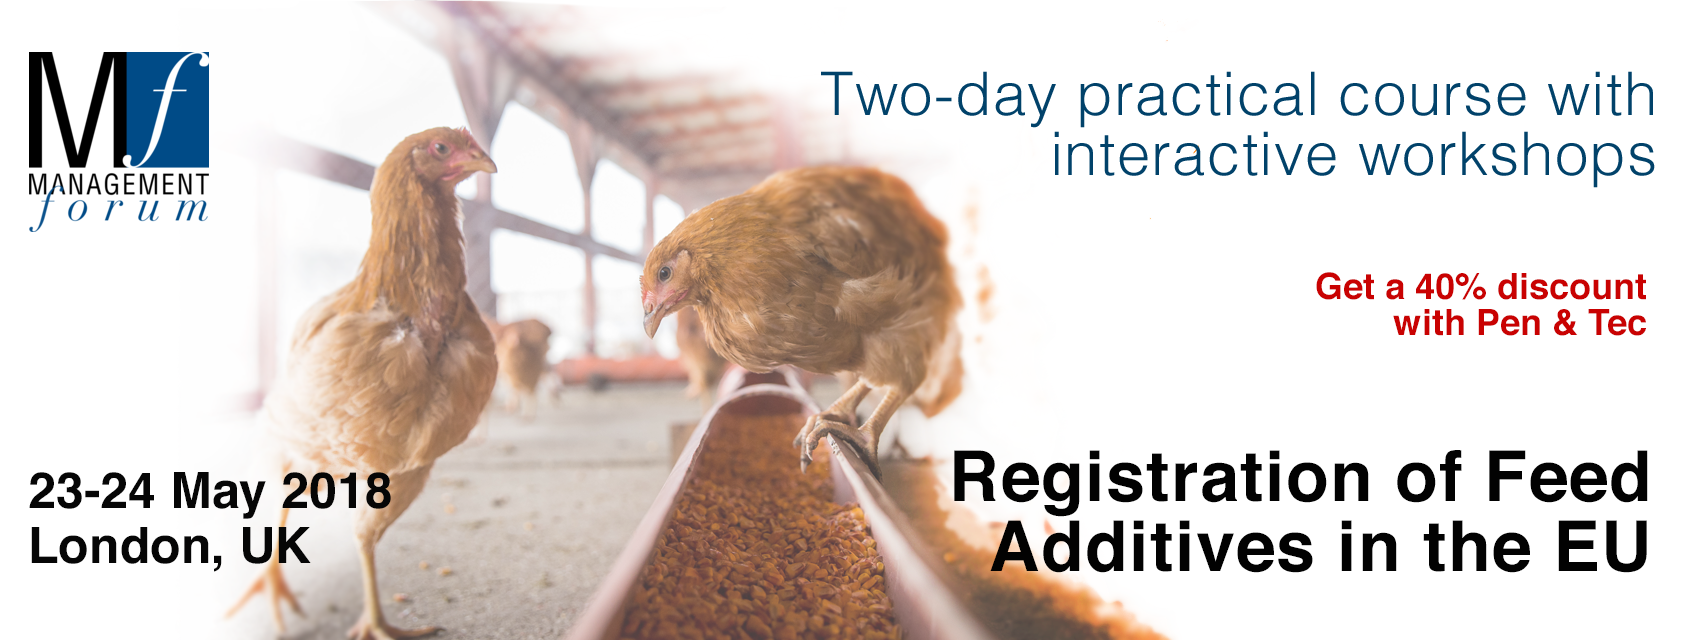 Registration of Animal Feed Additives in the EU